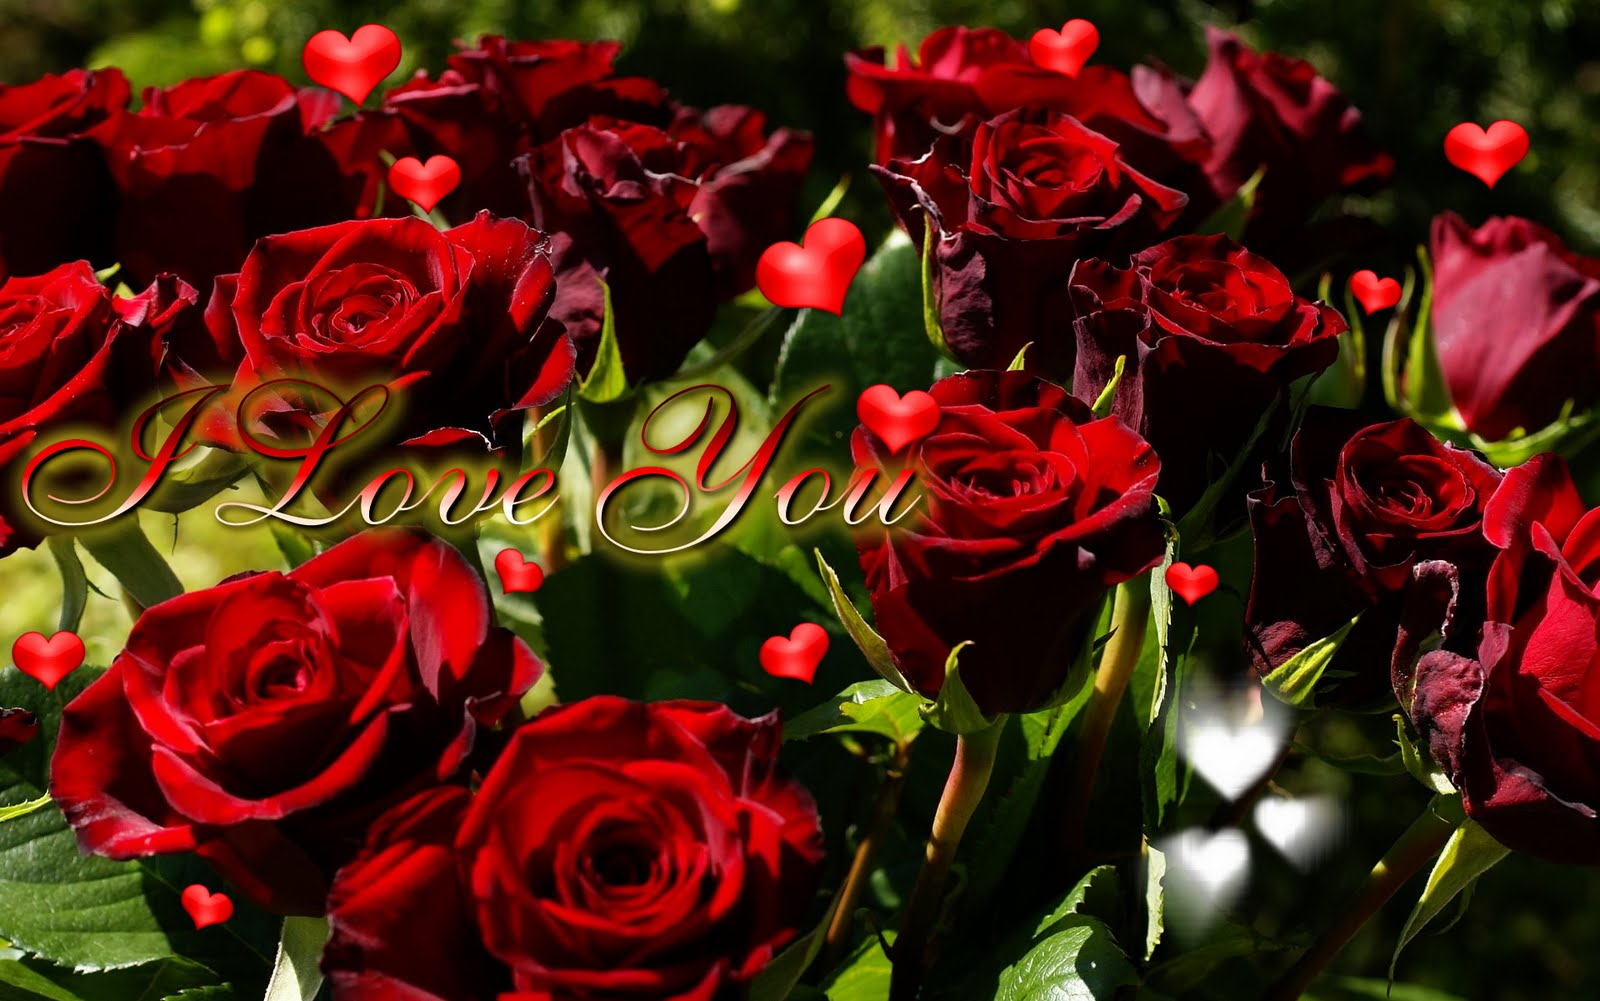 heart and roses background - photo #18